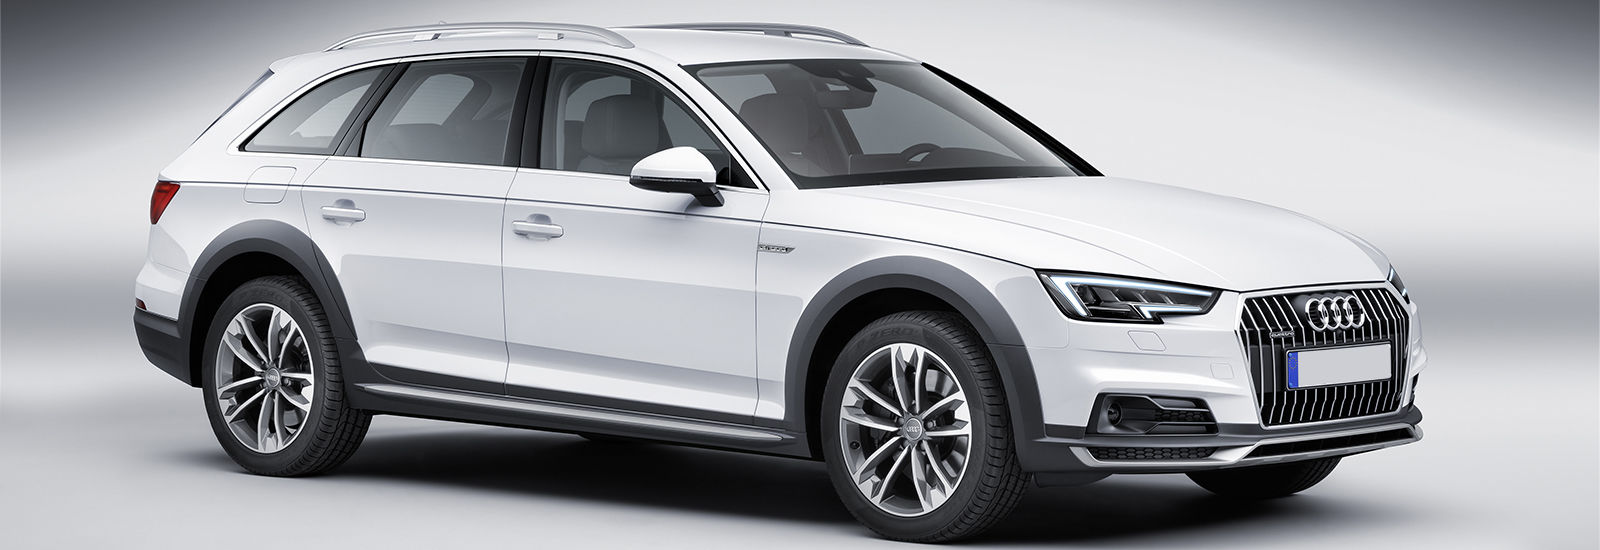 2018 audi a4 allroad quattro full review new cars reviews for 2016 2017 2018 best cars reviews. Black Bedroom Furniture Sets. Home Design Ideas